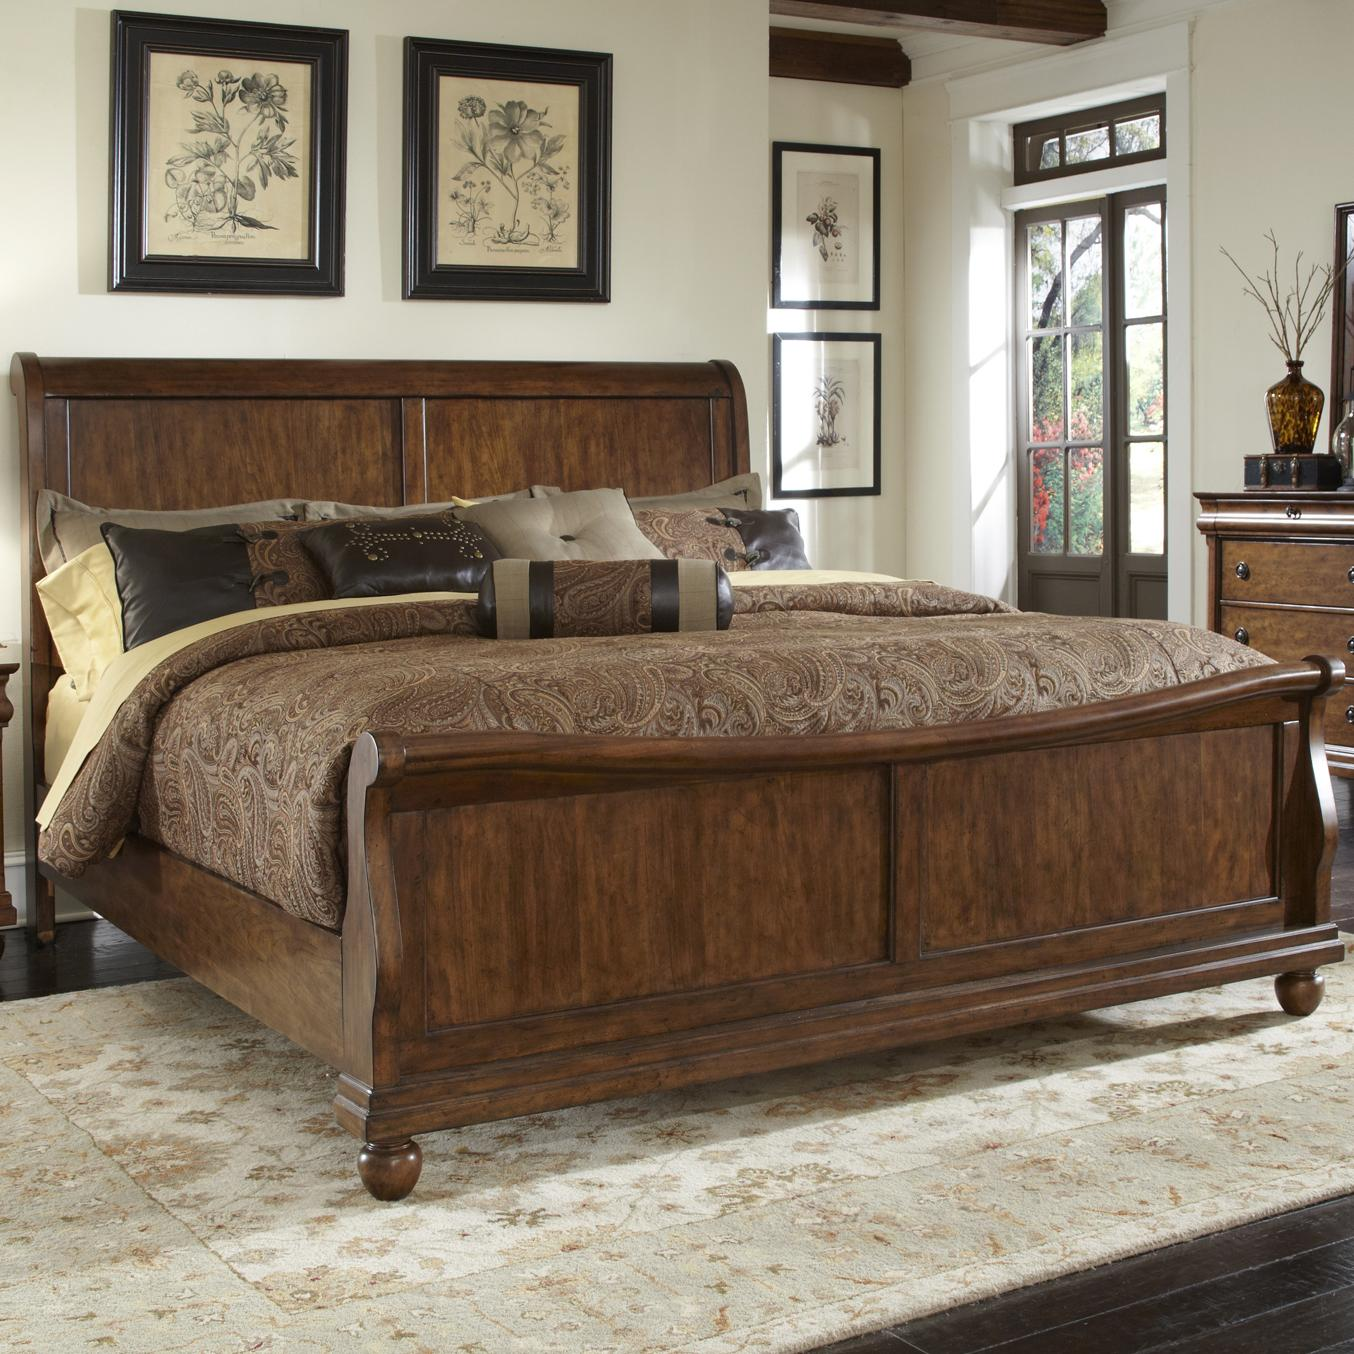 King Sleigh Bed Set With Bun Feet By Liberty Furniture Wolf And